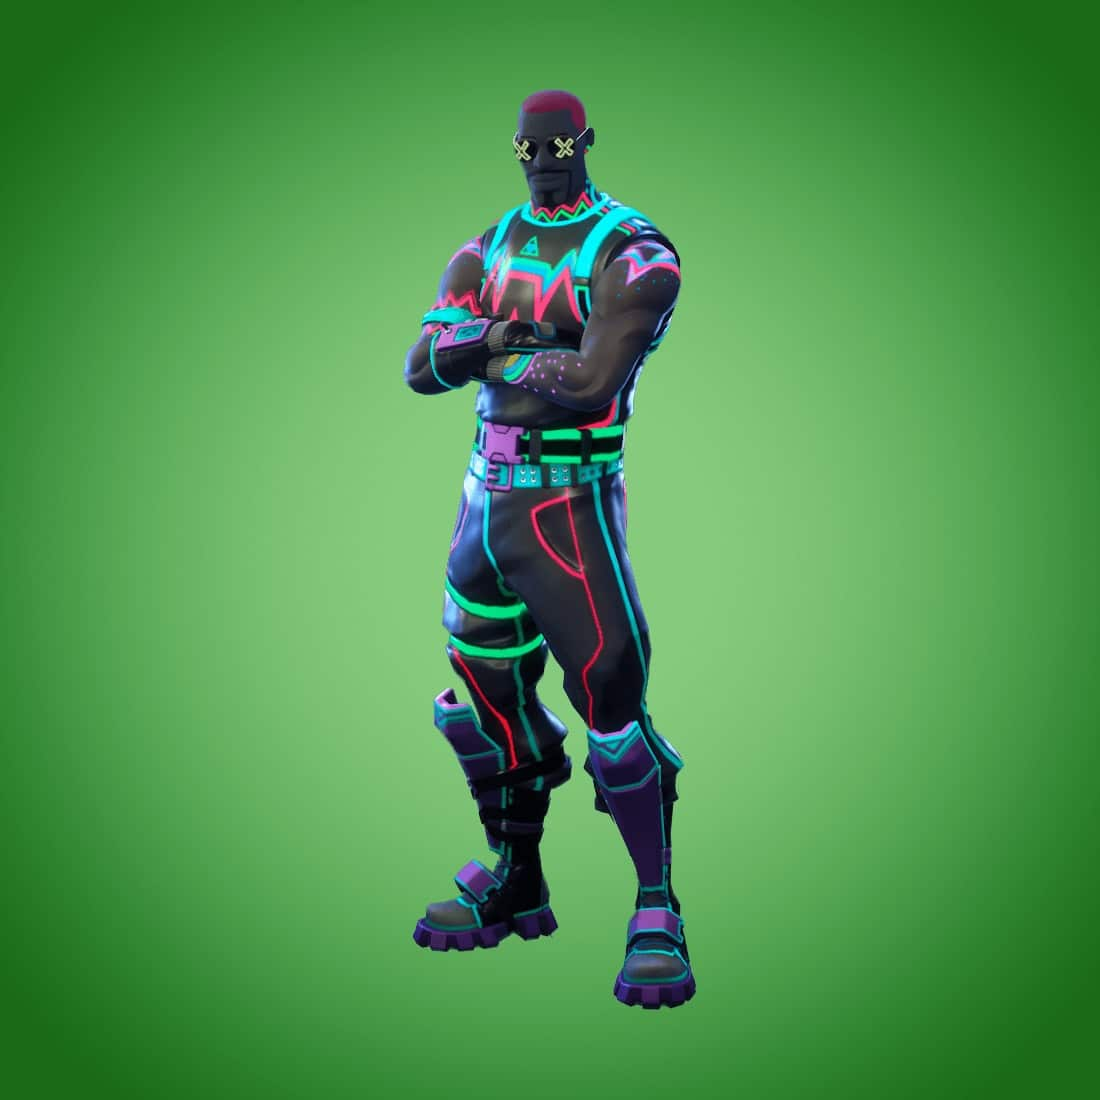 All Fortnite Skins & Characters [October 2018] - Tech ...